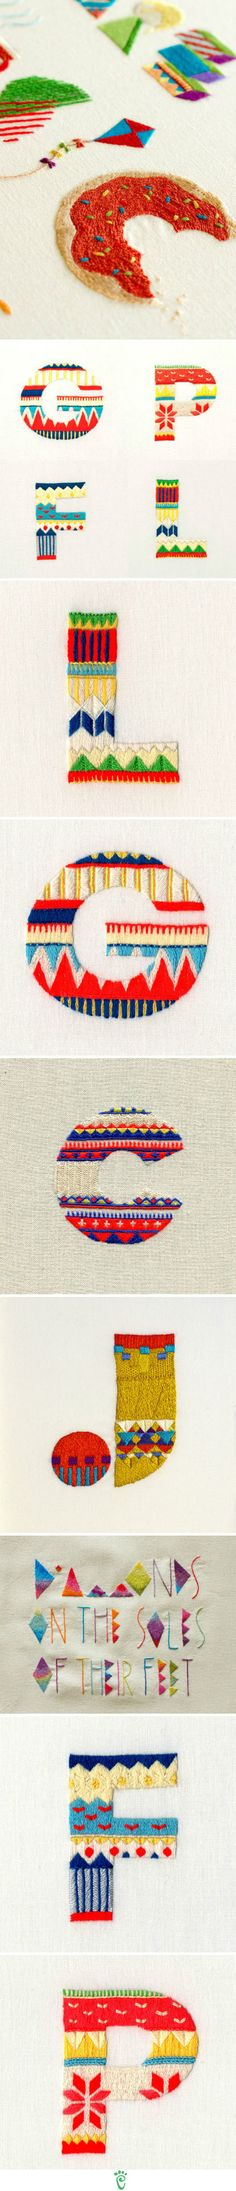 brilliant embroidery